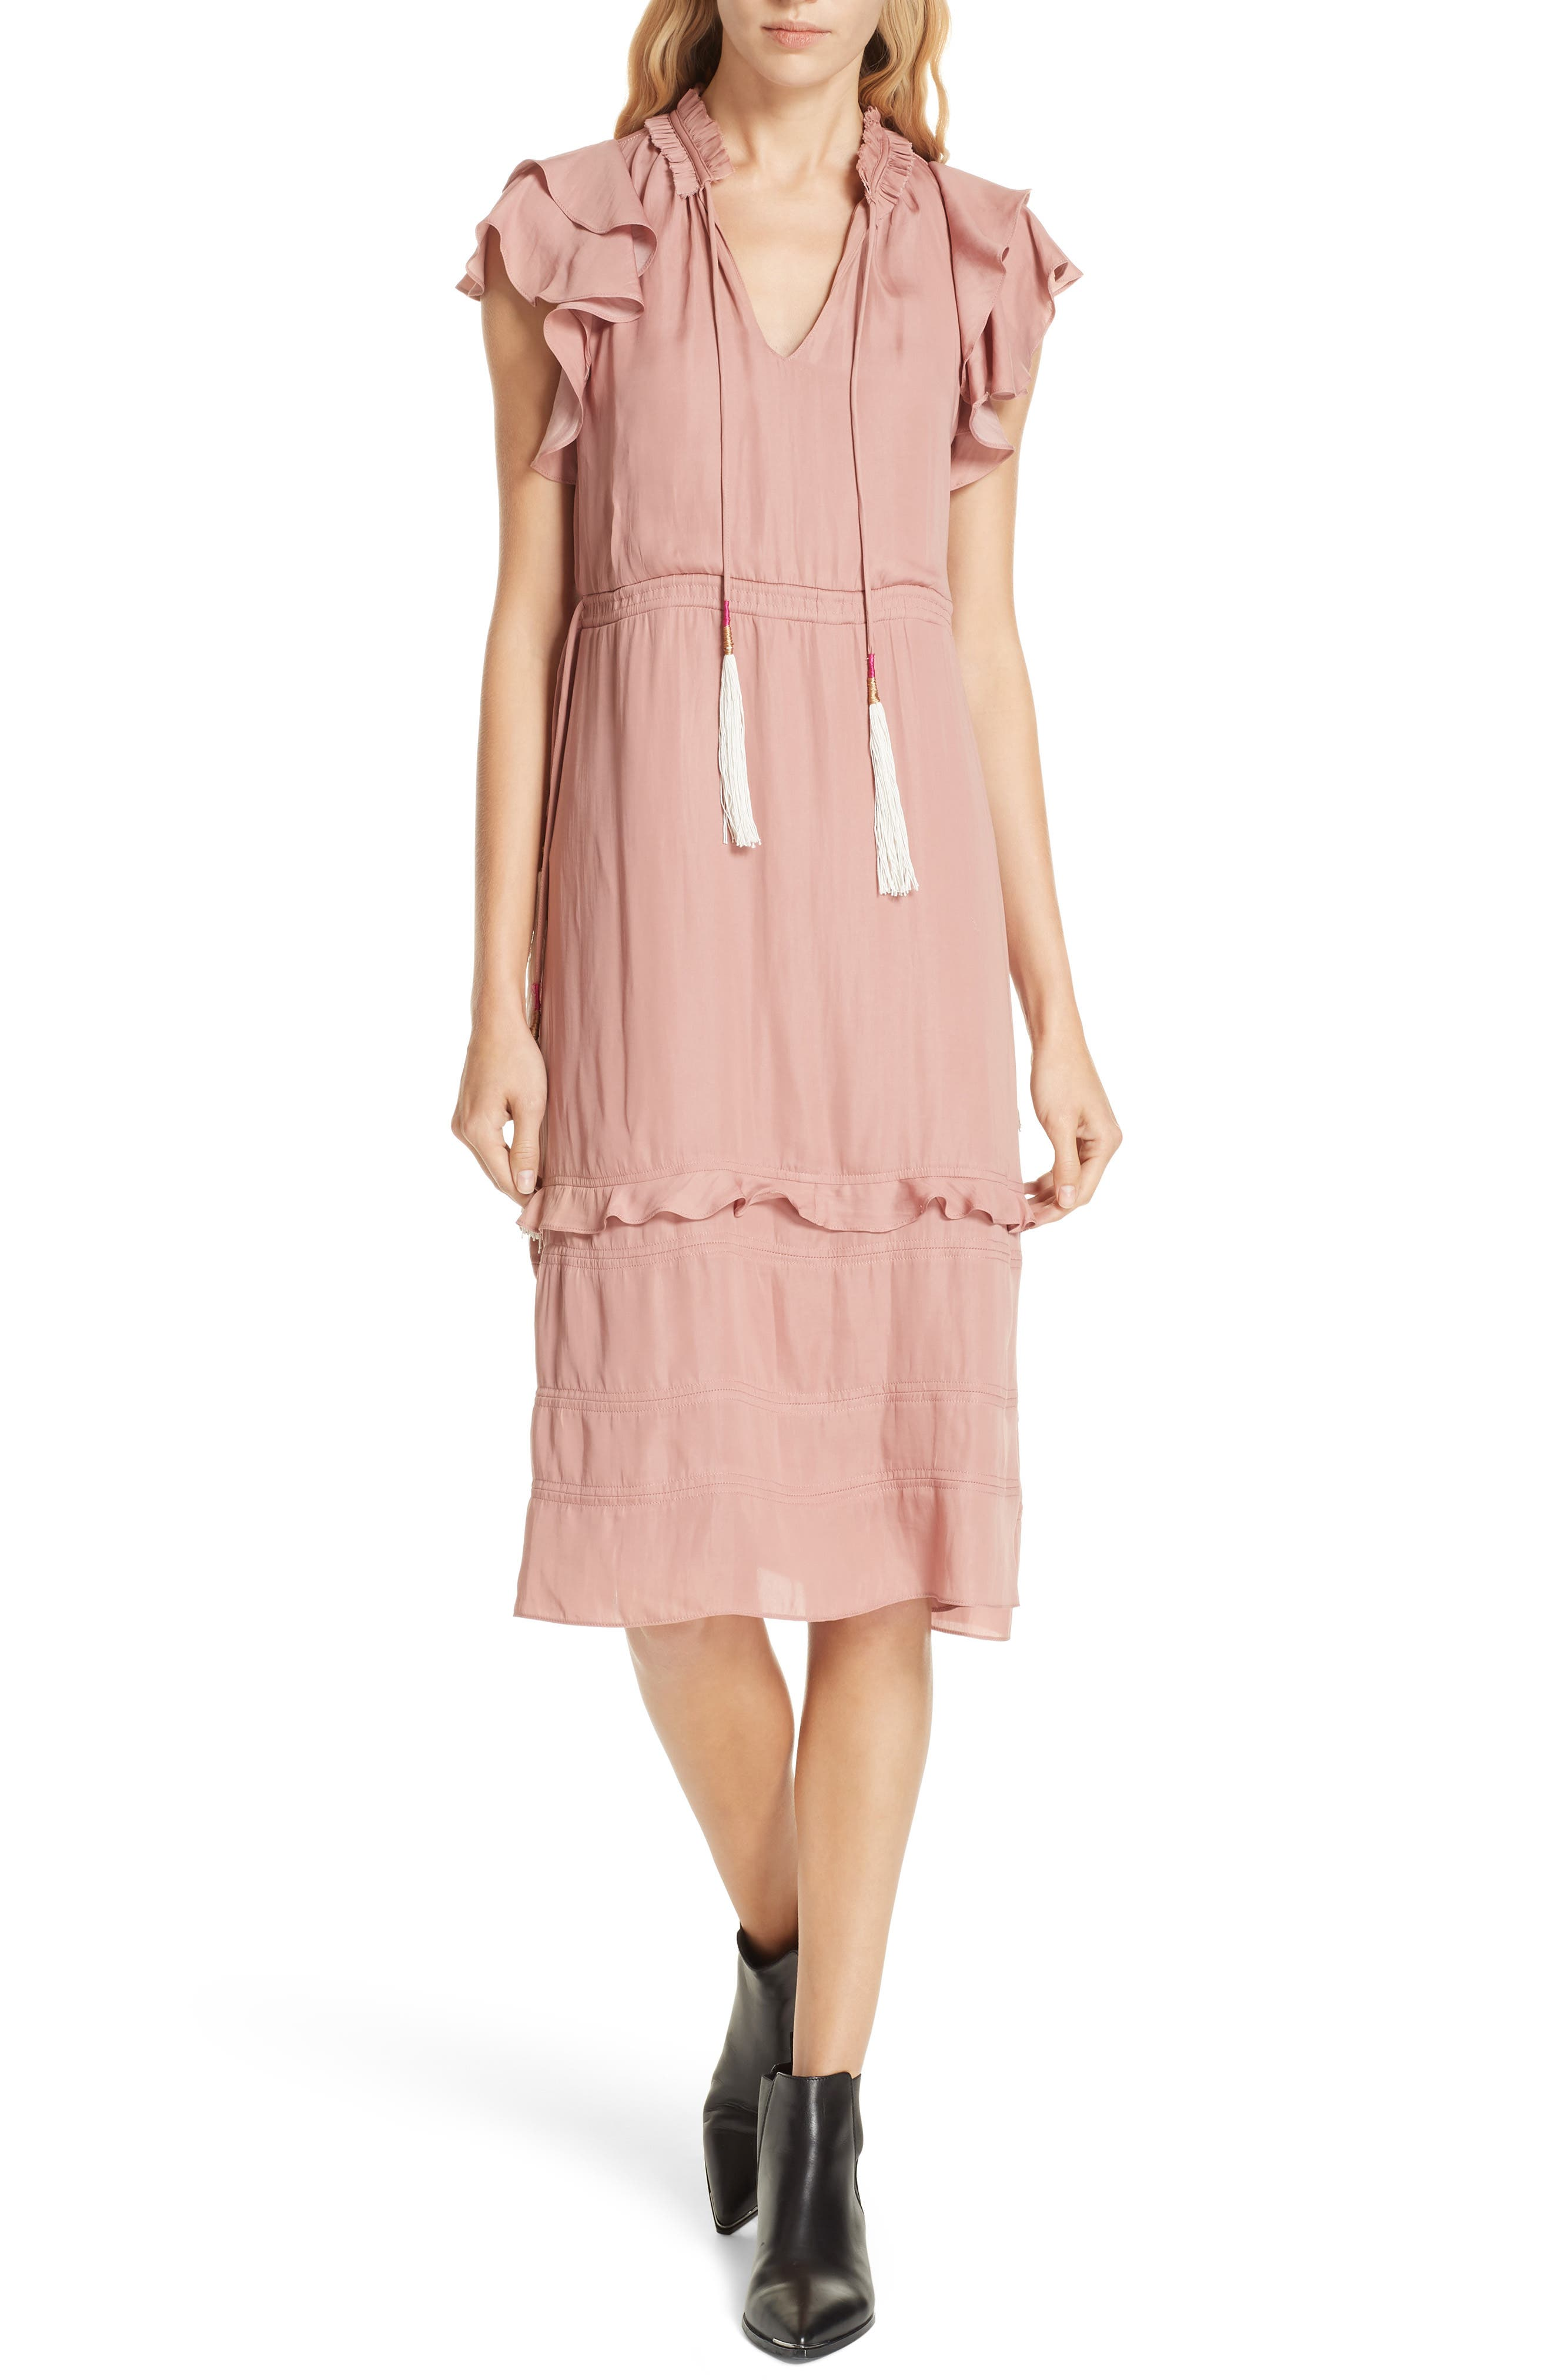 Tassel Tie Midi Dress,                         Main,                         color, ROSE WOOD